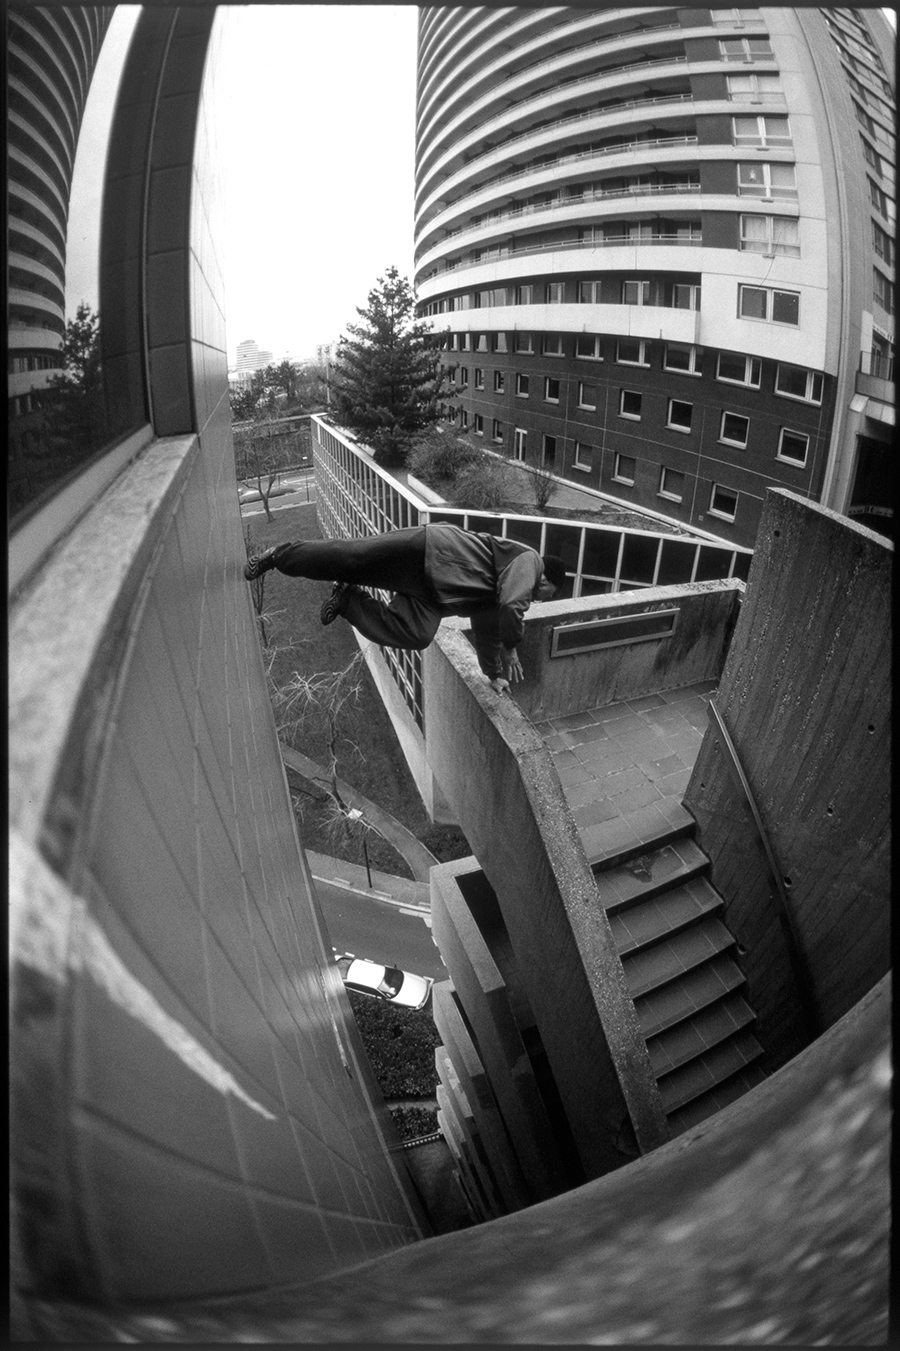 David Belle / La Défense